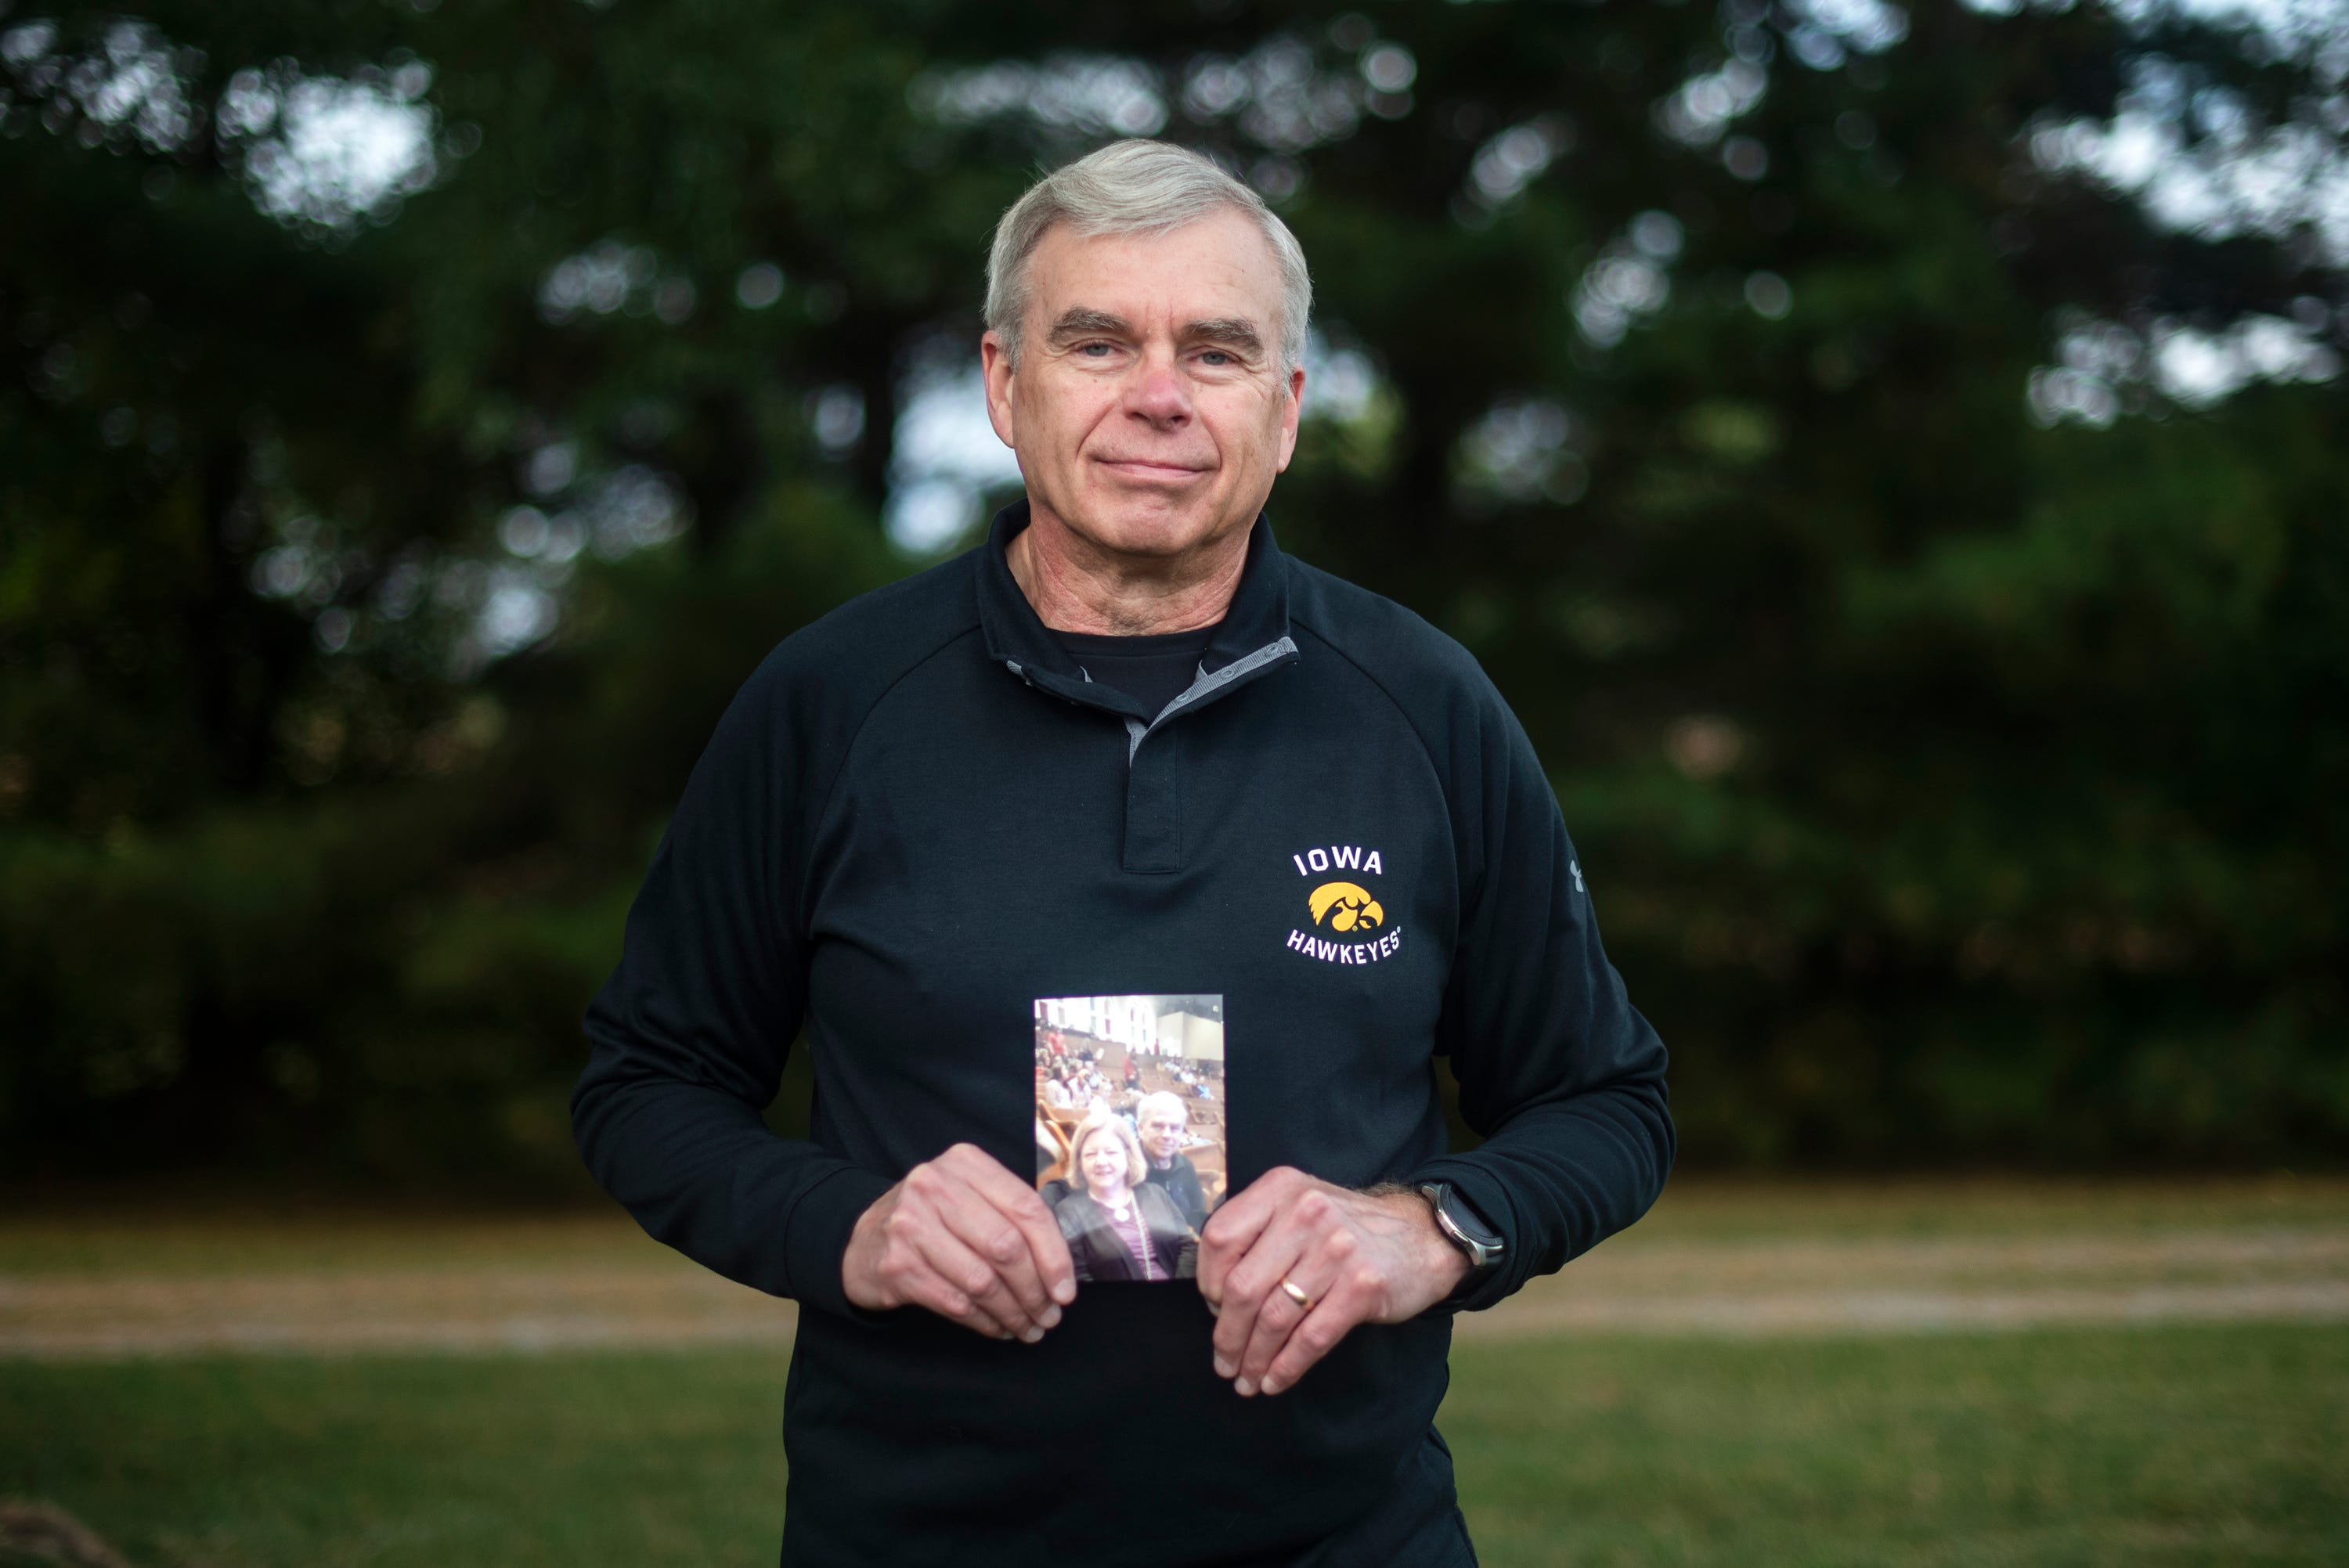 Ken Thiry holds a photo of his late wife, Regina, who died of COVID-19.